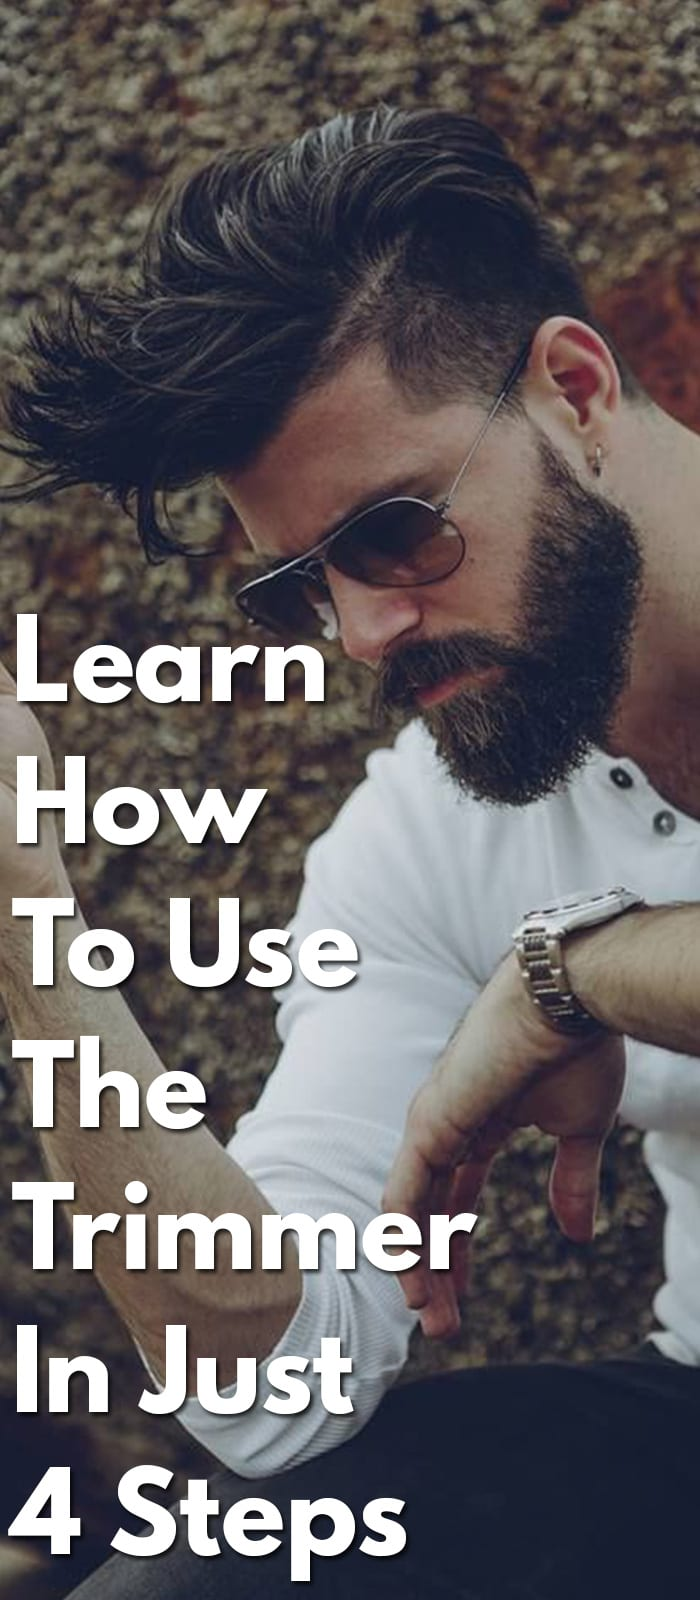 Learn-How-To-Use-The-Trimmer-In-Just-4-Steps